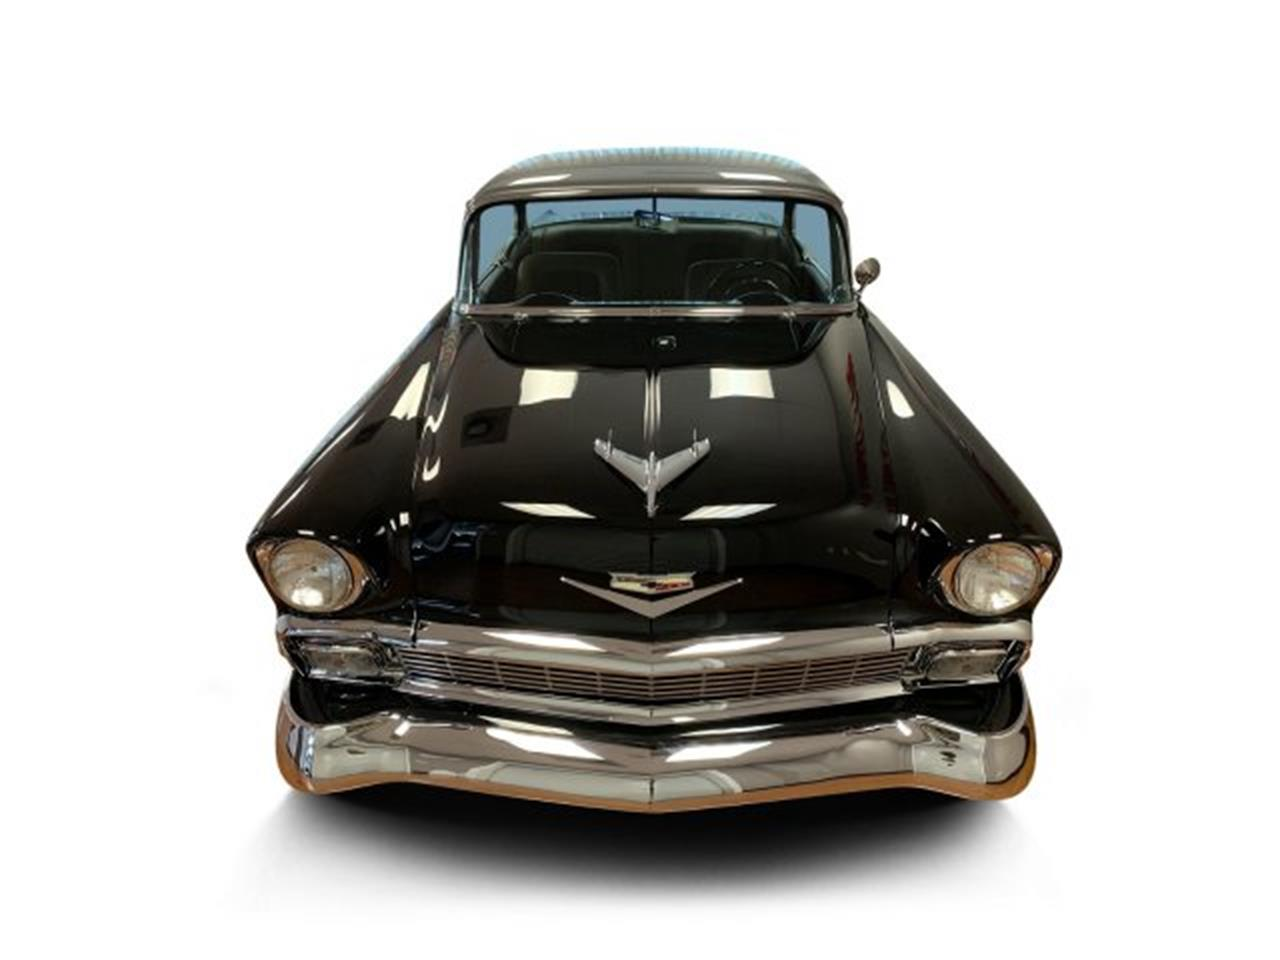 Large Picture of Classic 1956 Chevrolet Bel Air located in Florida - $124,900.00 Offered by AutoSport USA - PZIN